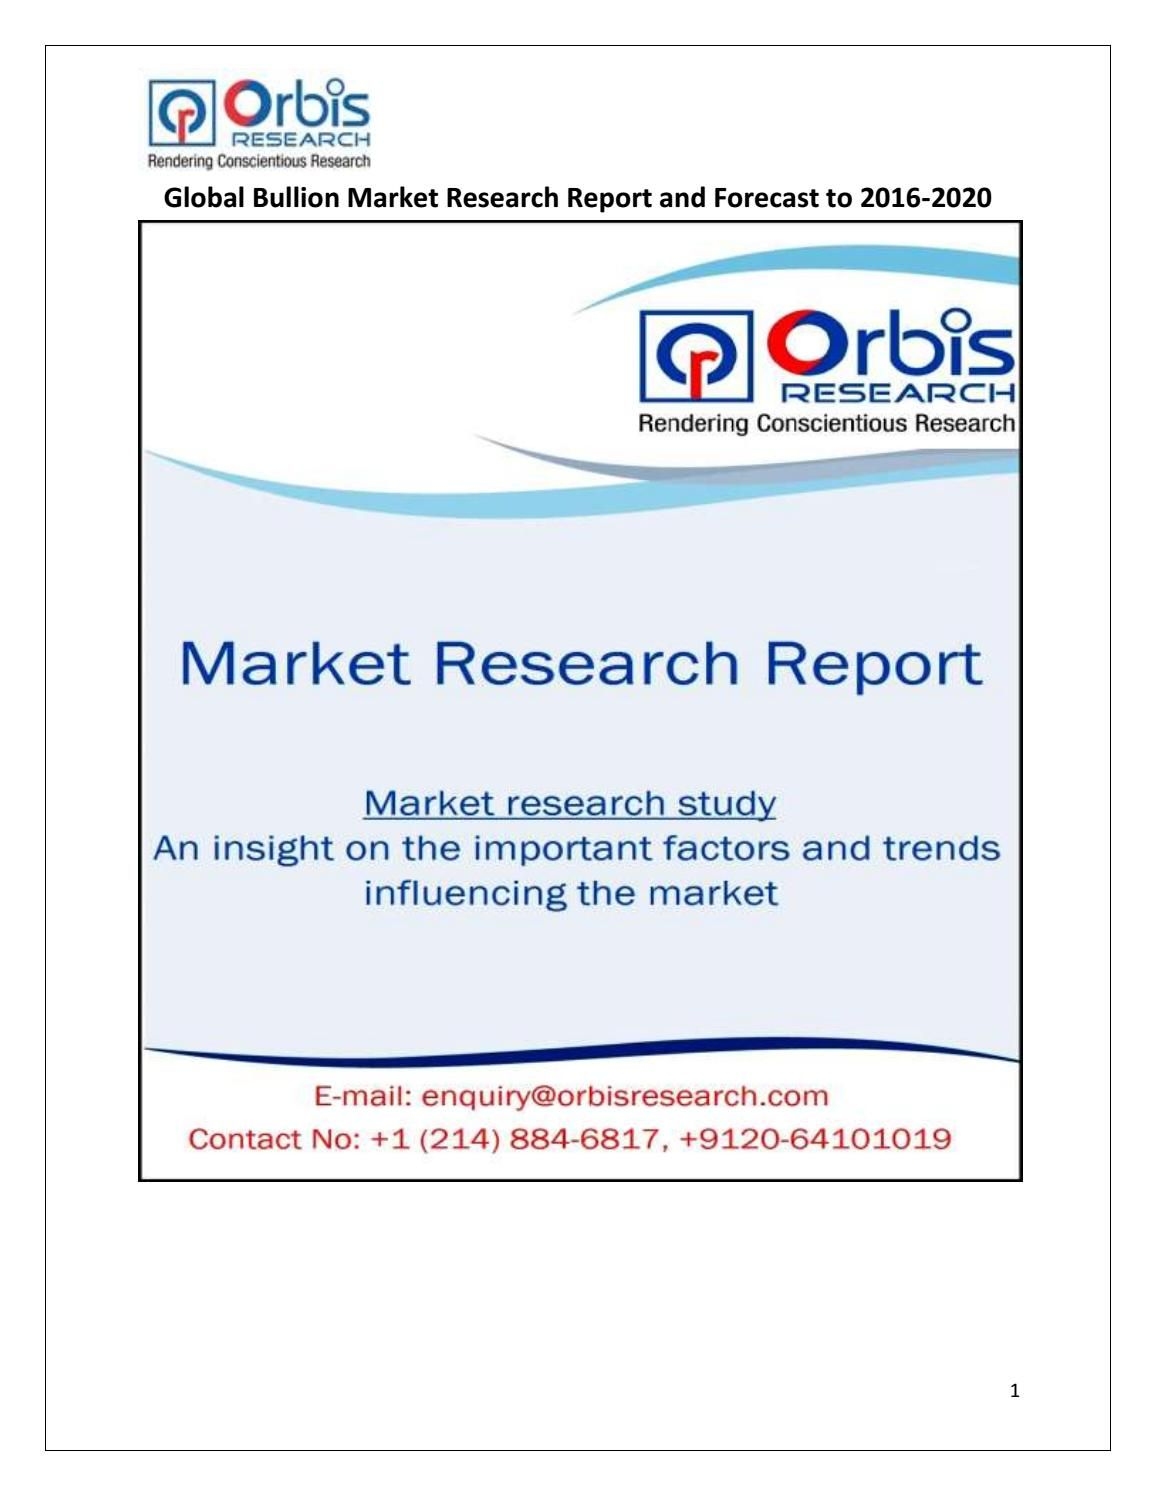 Global Bullion Market @ http://www.orbisresearch.com/reports/index/global-bullion-market-research-report-and-forecast-to-2016-2020 .